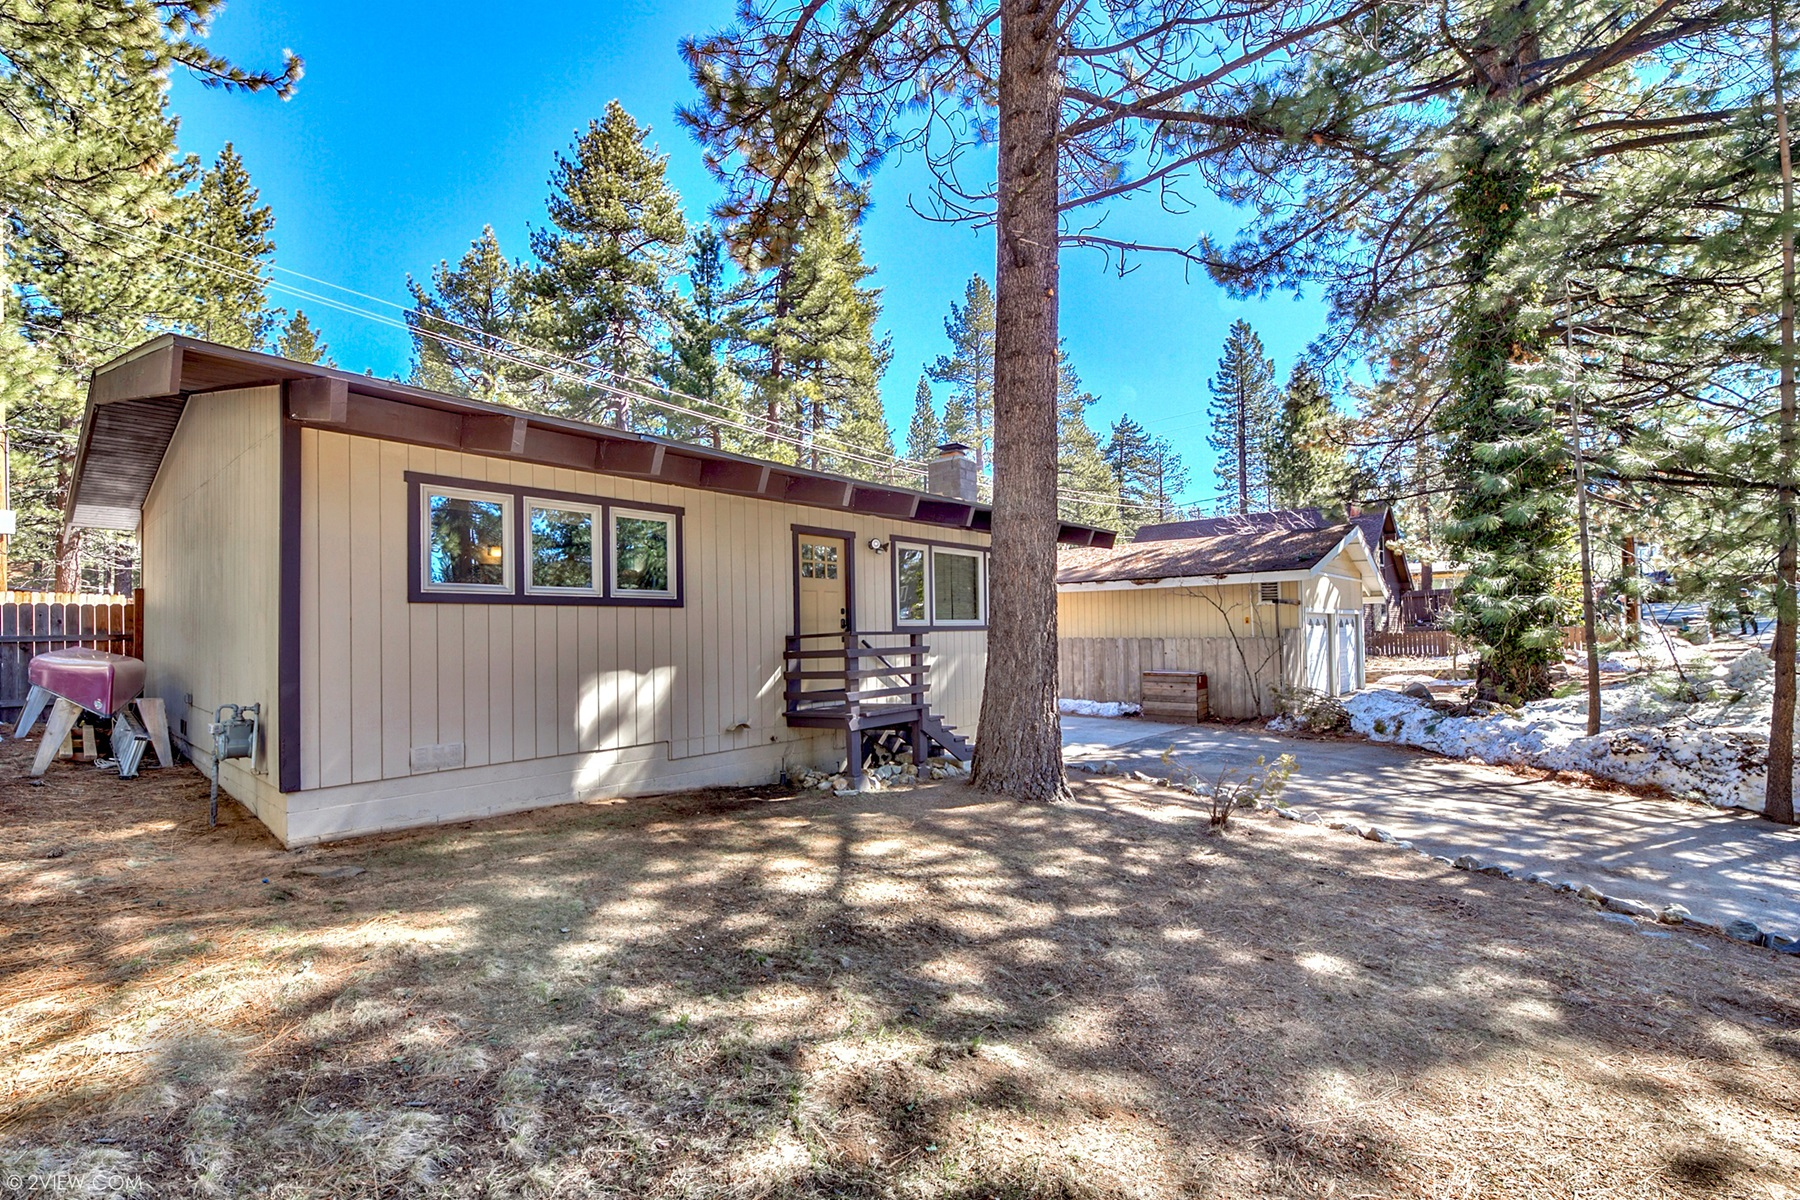 Property for Active at 906 Edgewood Circle, South Lake Tahoe, CA 96150 906 Edgewood Circle South Lake Tahoe, California 96150 United States